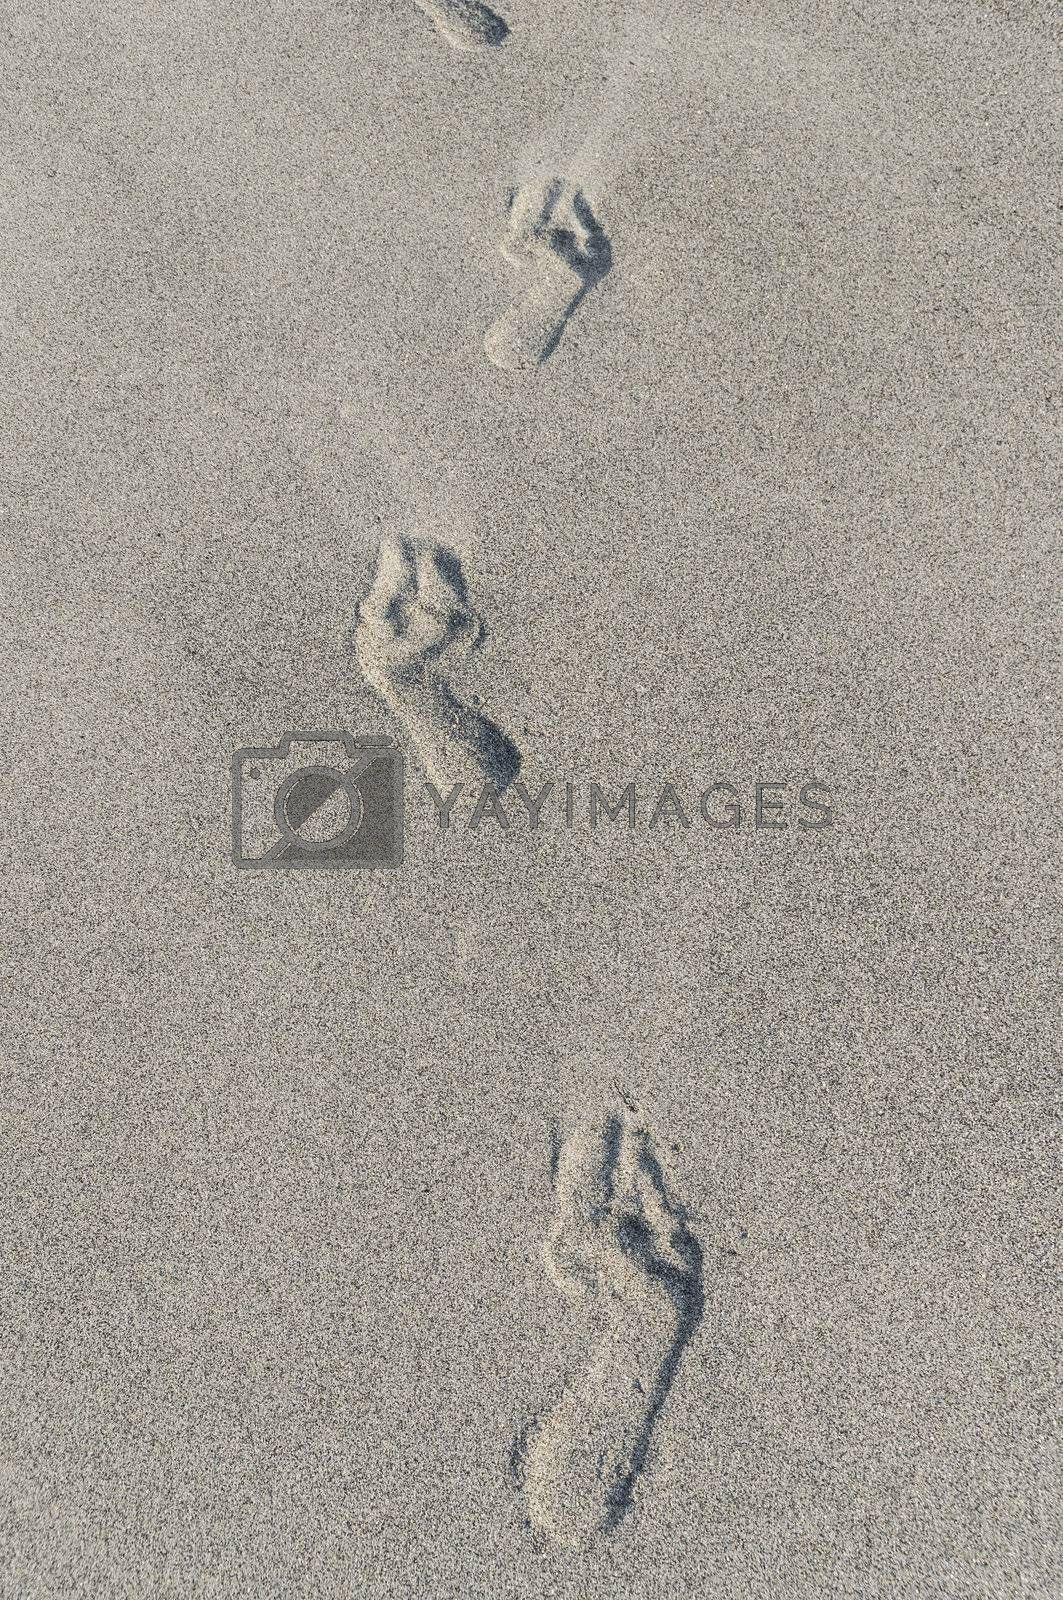 human footprints in the sand, vertical image